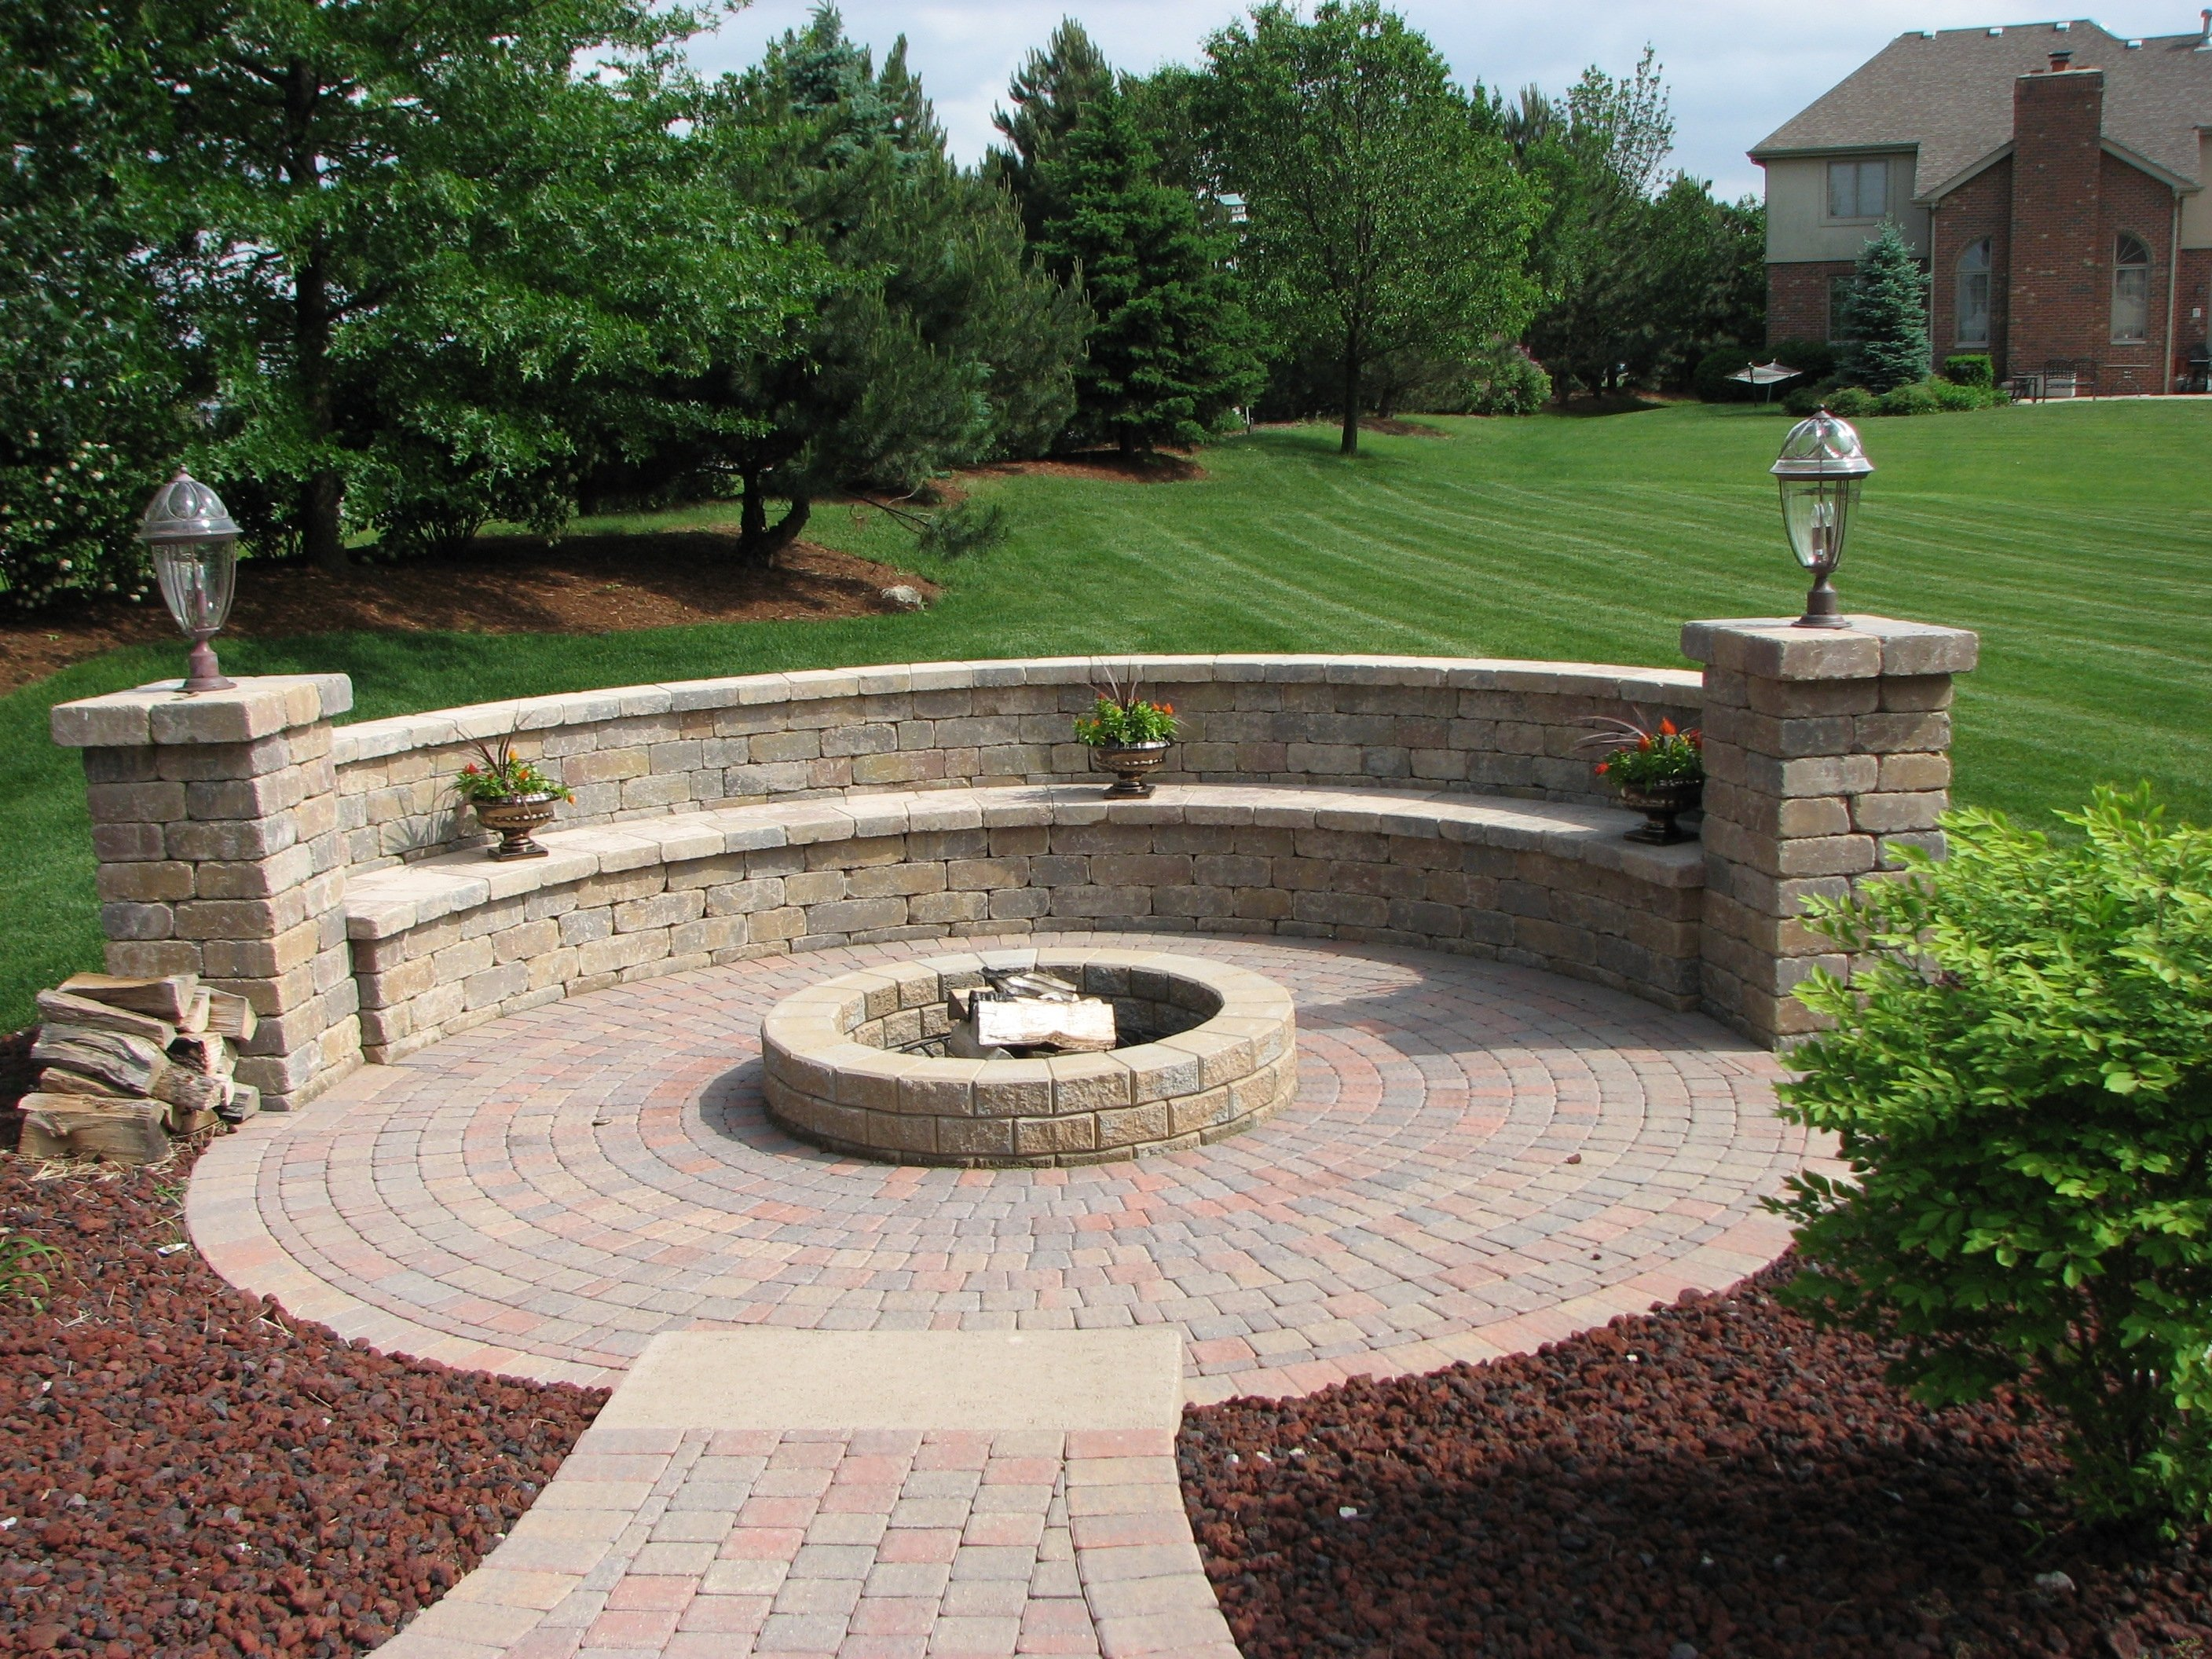 10 Perfect Patio Design Ideas With Fire Pits ideas about outdoor fire pit kits also designs patio area trends 2021